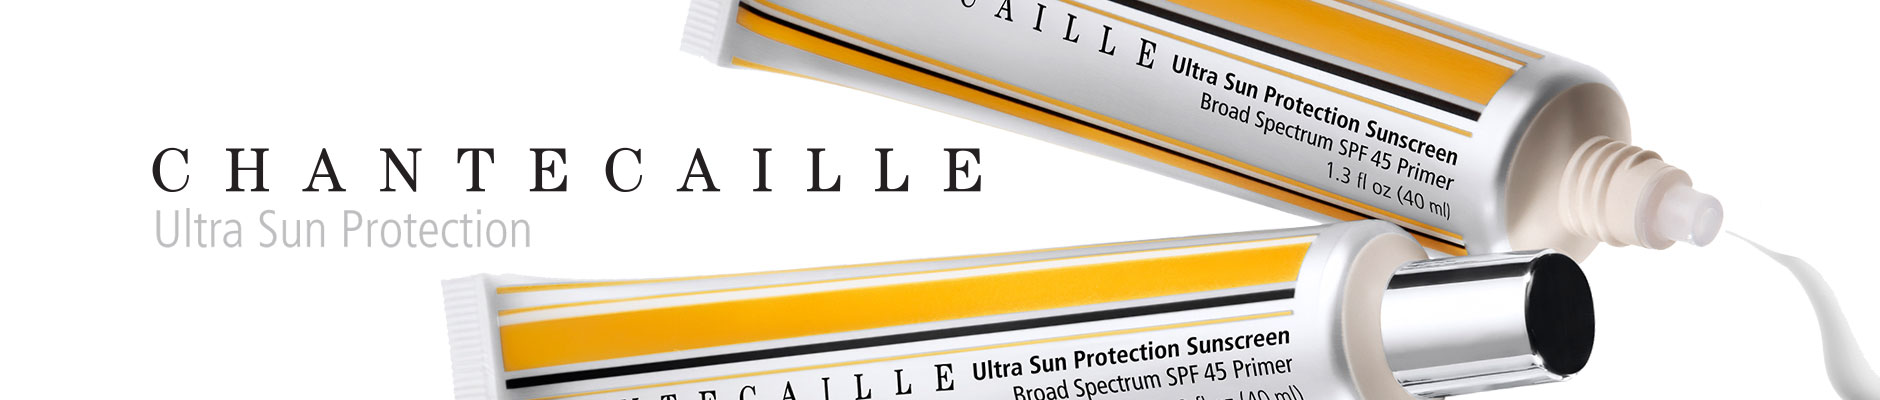 Chantecaille - Ultra Sun Protection